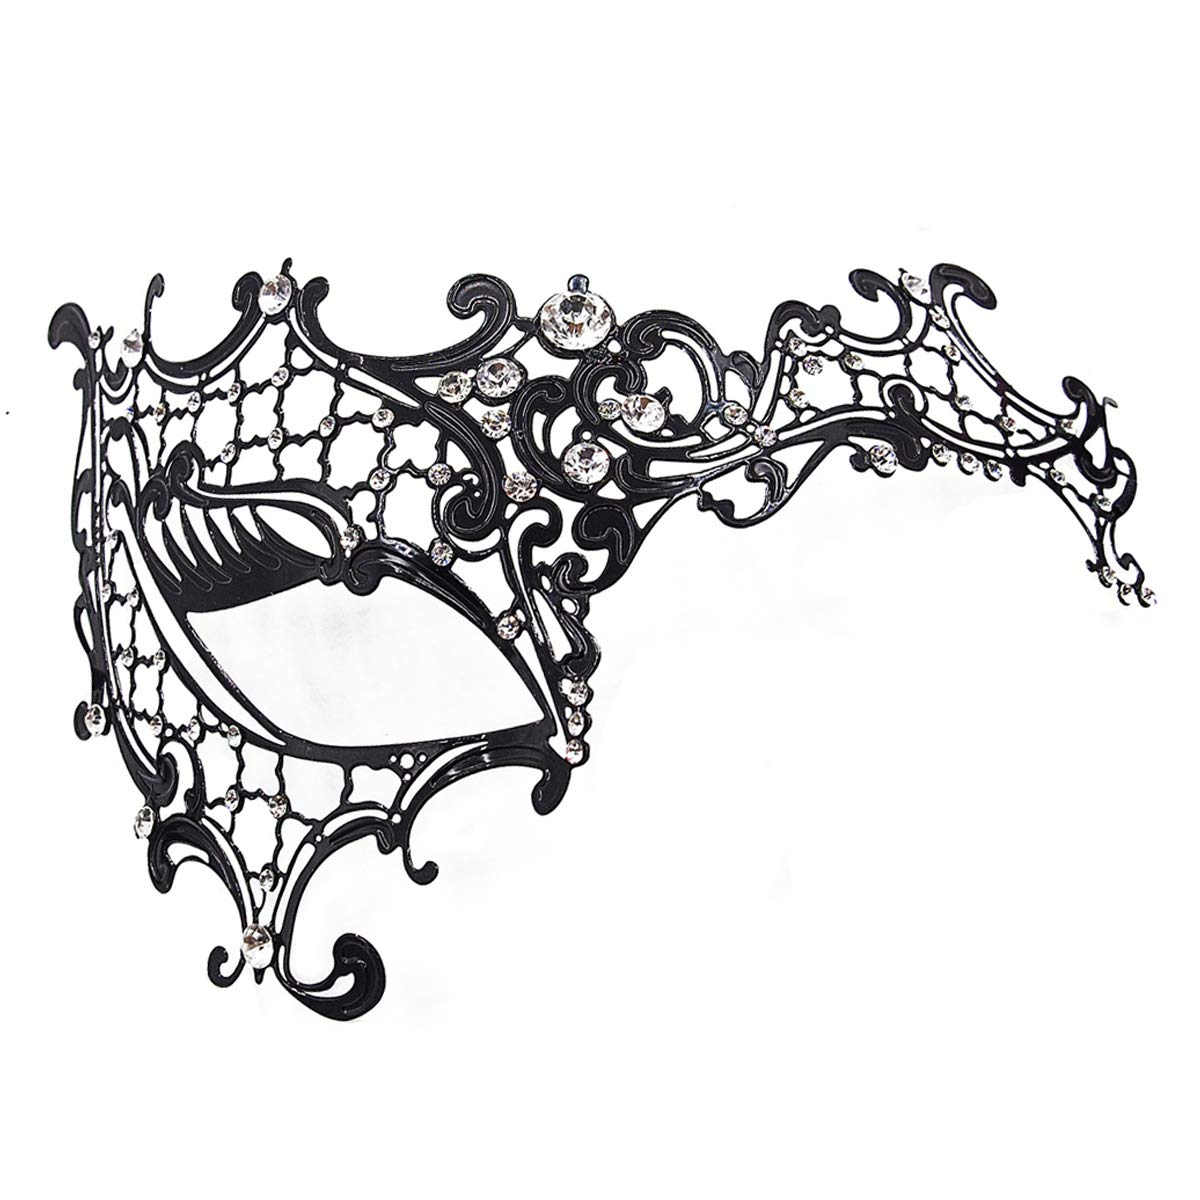 Masquerade Mask for Women 2 Pack Shiny Metal Rhinestone Mask Party Porm Ball Mask Free Lace Mask Costume